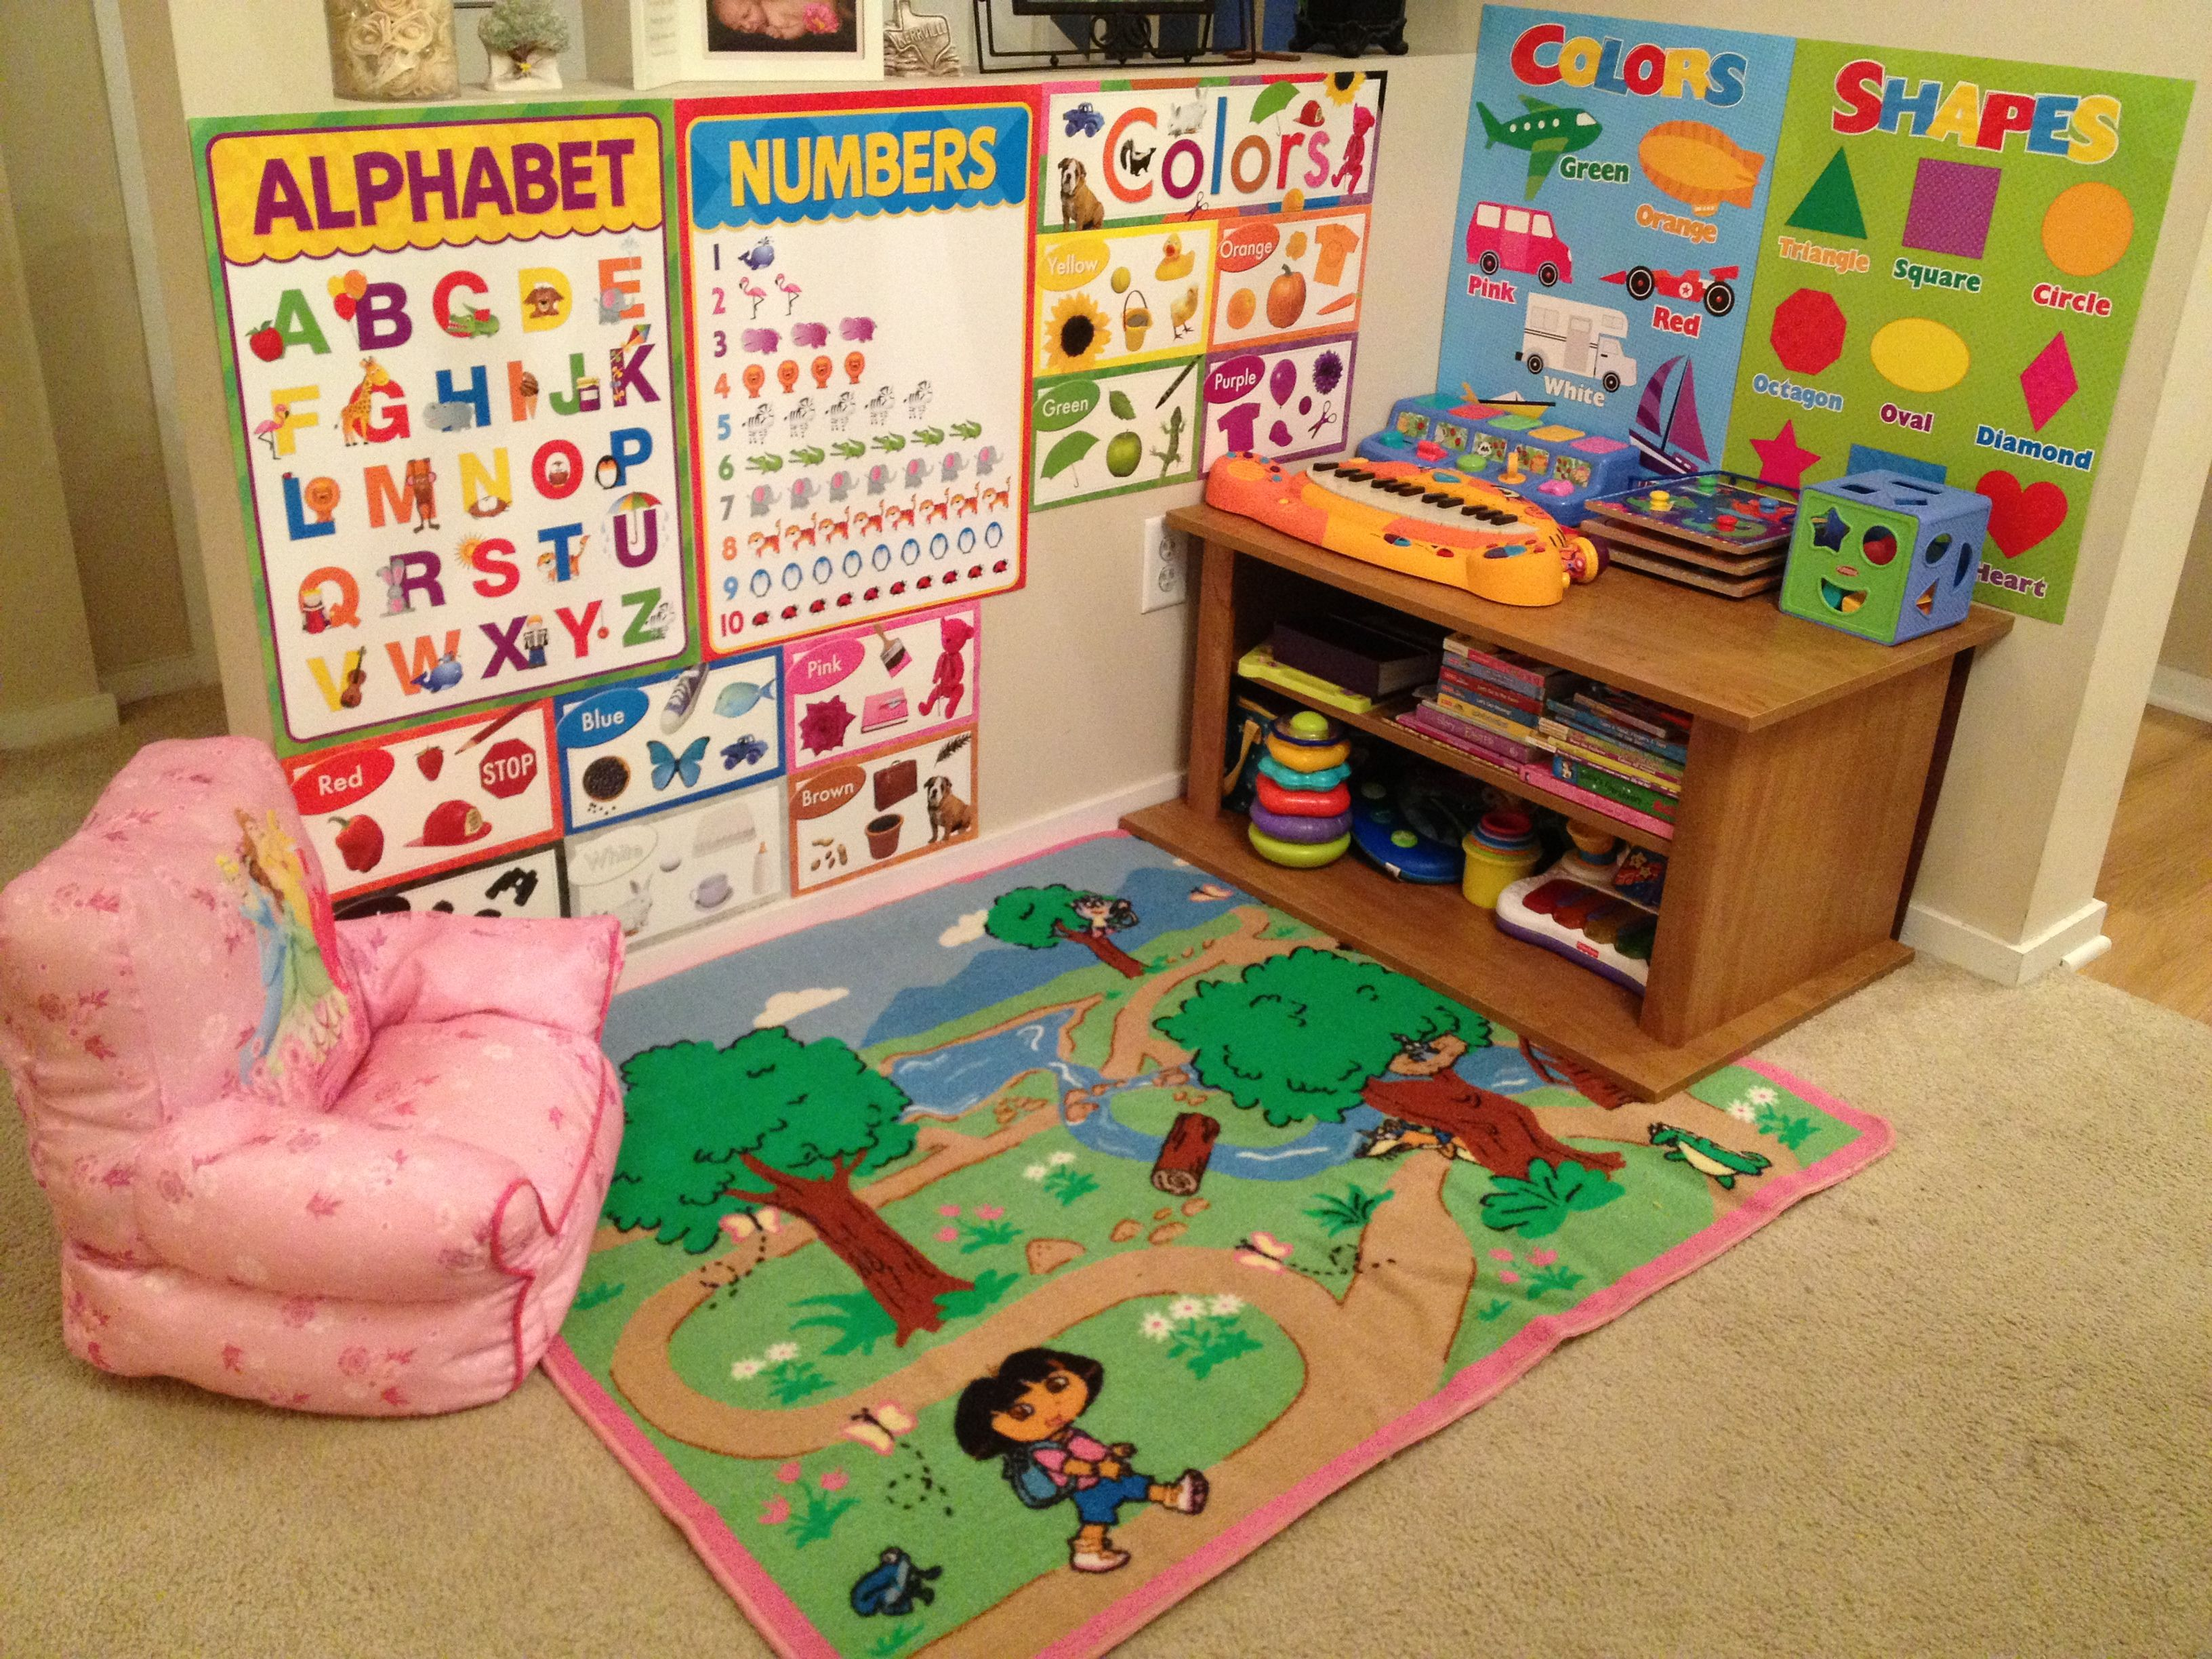 Pin By Lydia Carpenter Belew On Teaching The Kids Toddler Playroom Kids Playroom Toddler Play